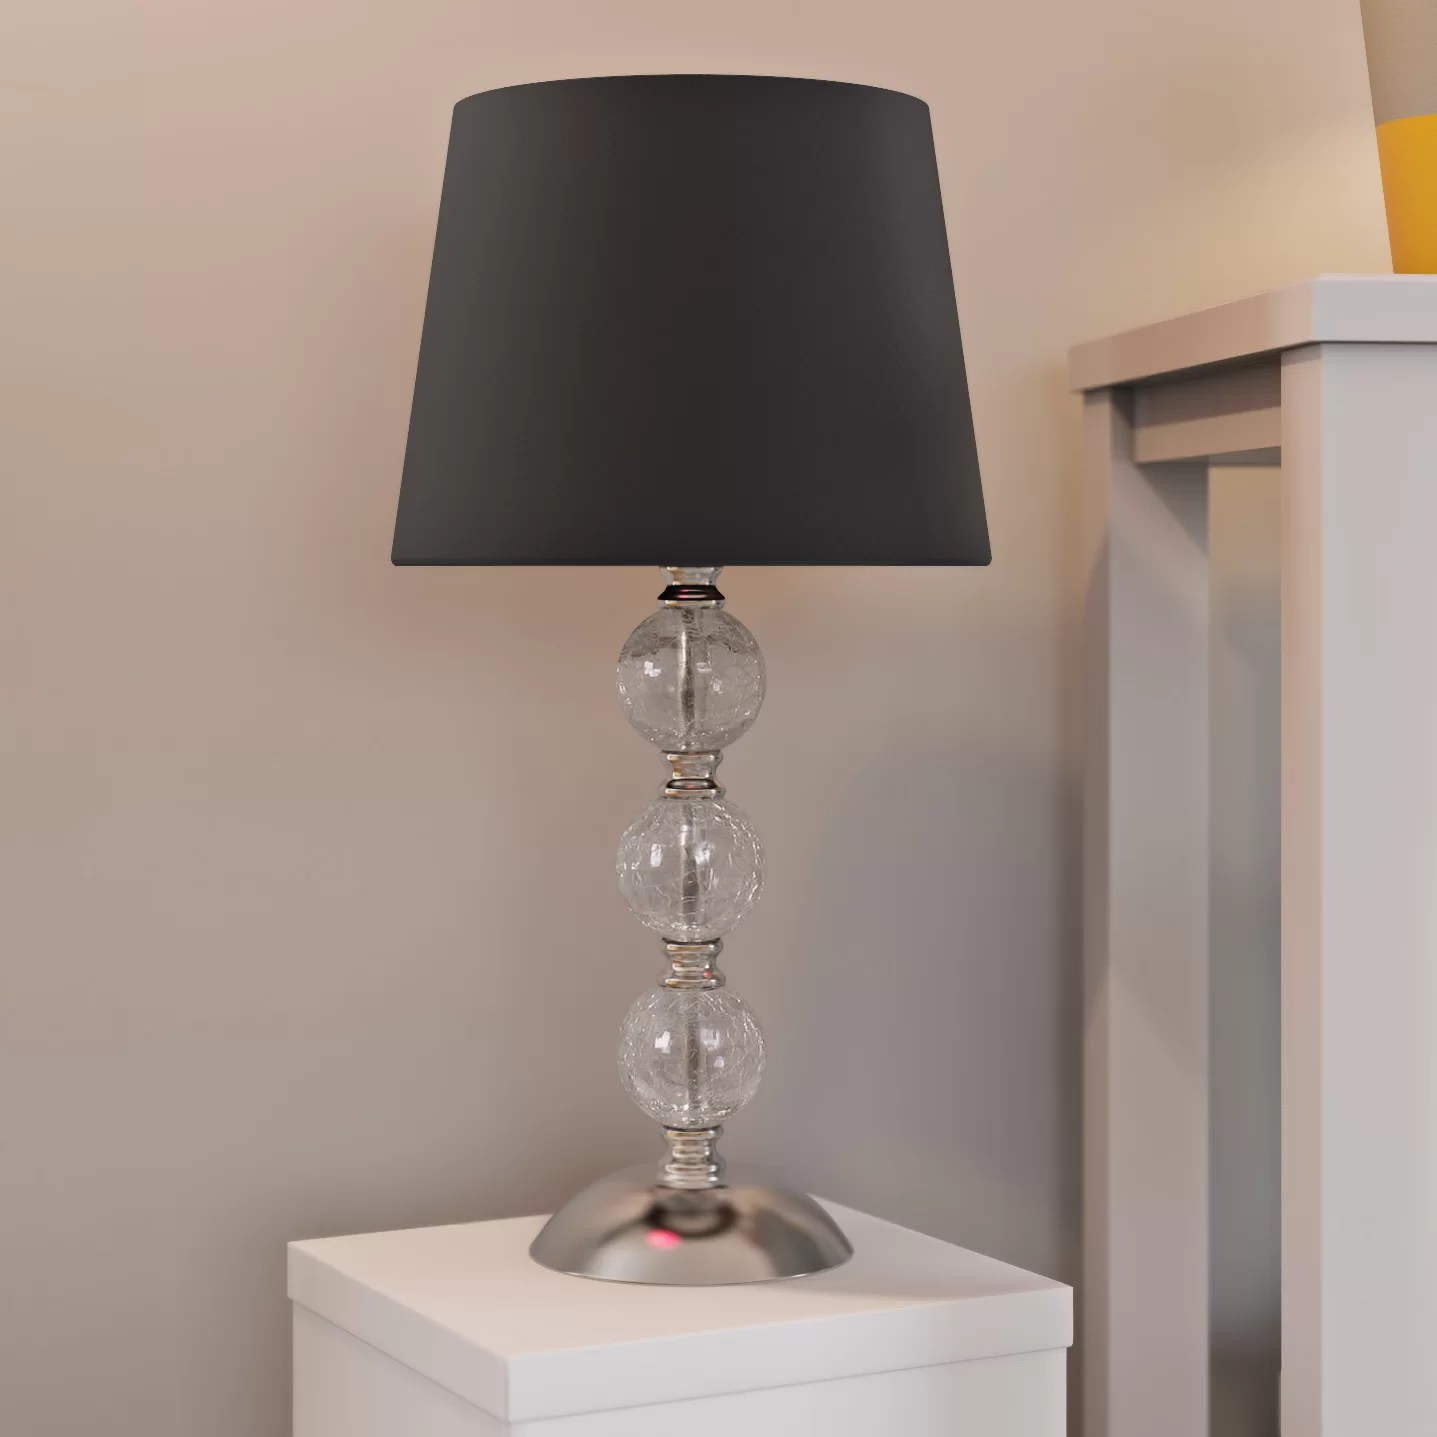 House Table Lamp House Additions 39cm Table Lamp And Reviews Wayfair Uk